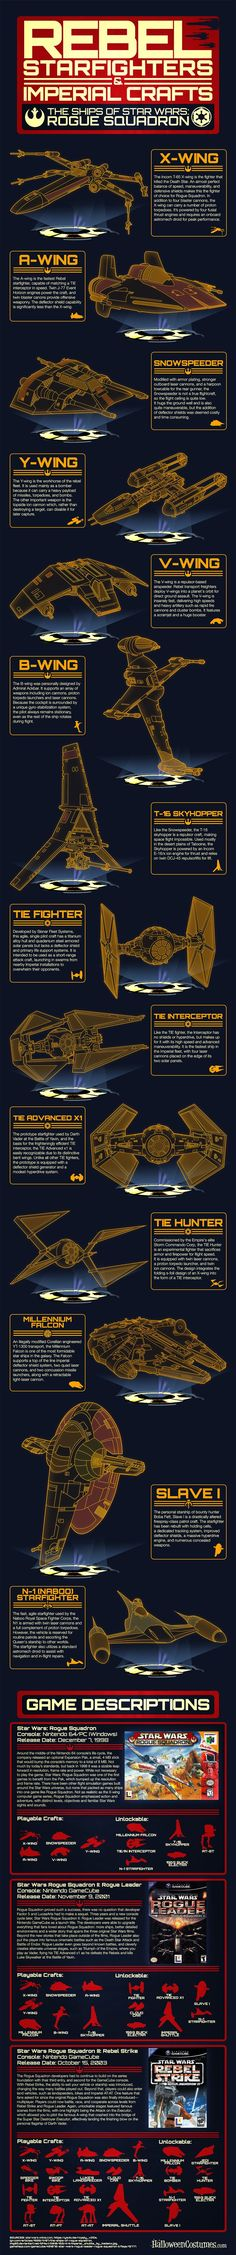 Star Wars: Rebel Starfighters & Imperial Crafts